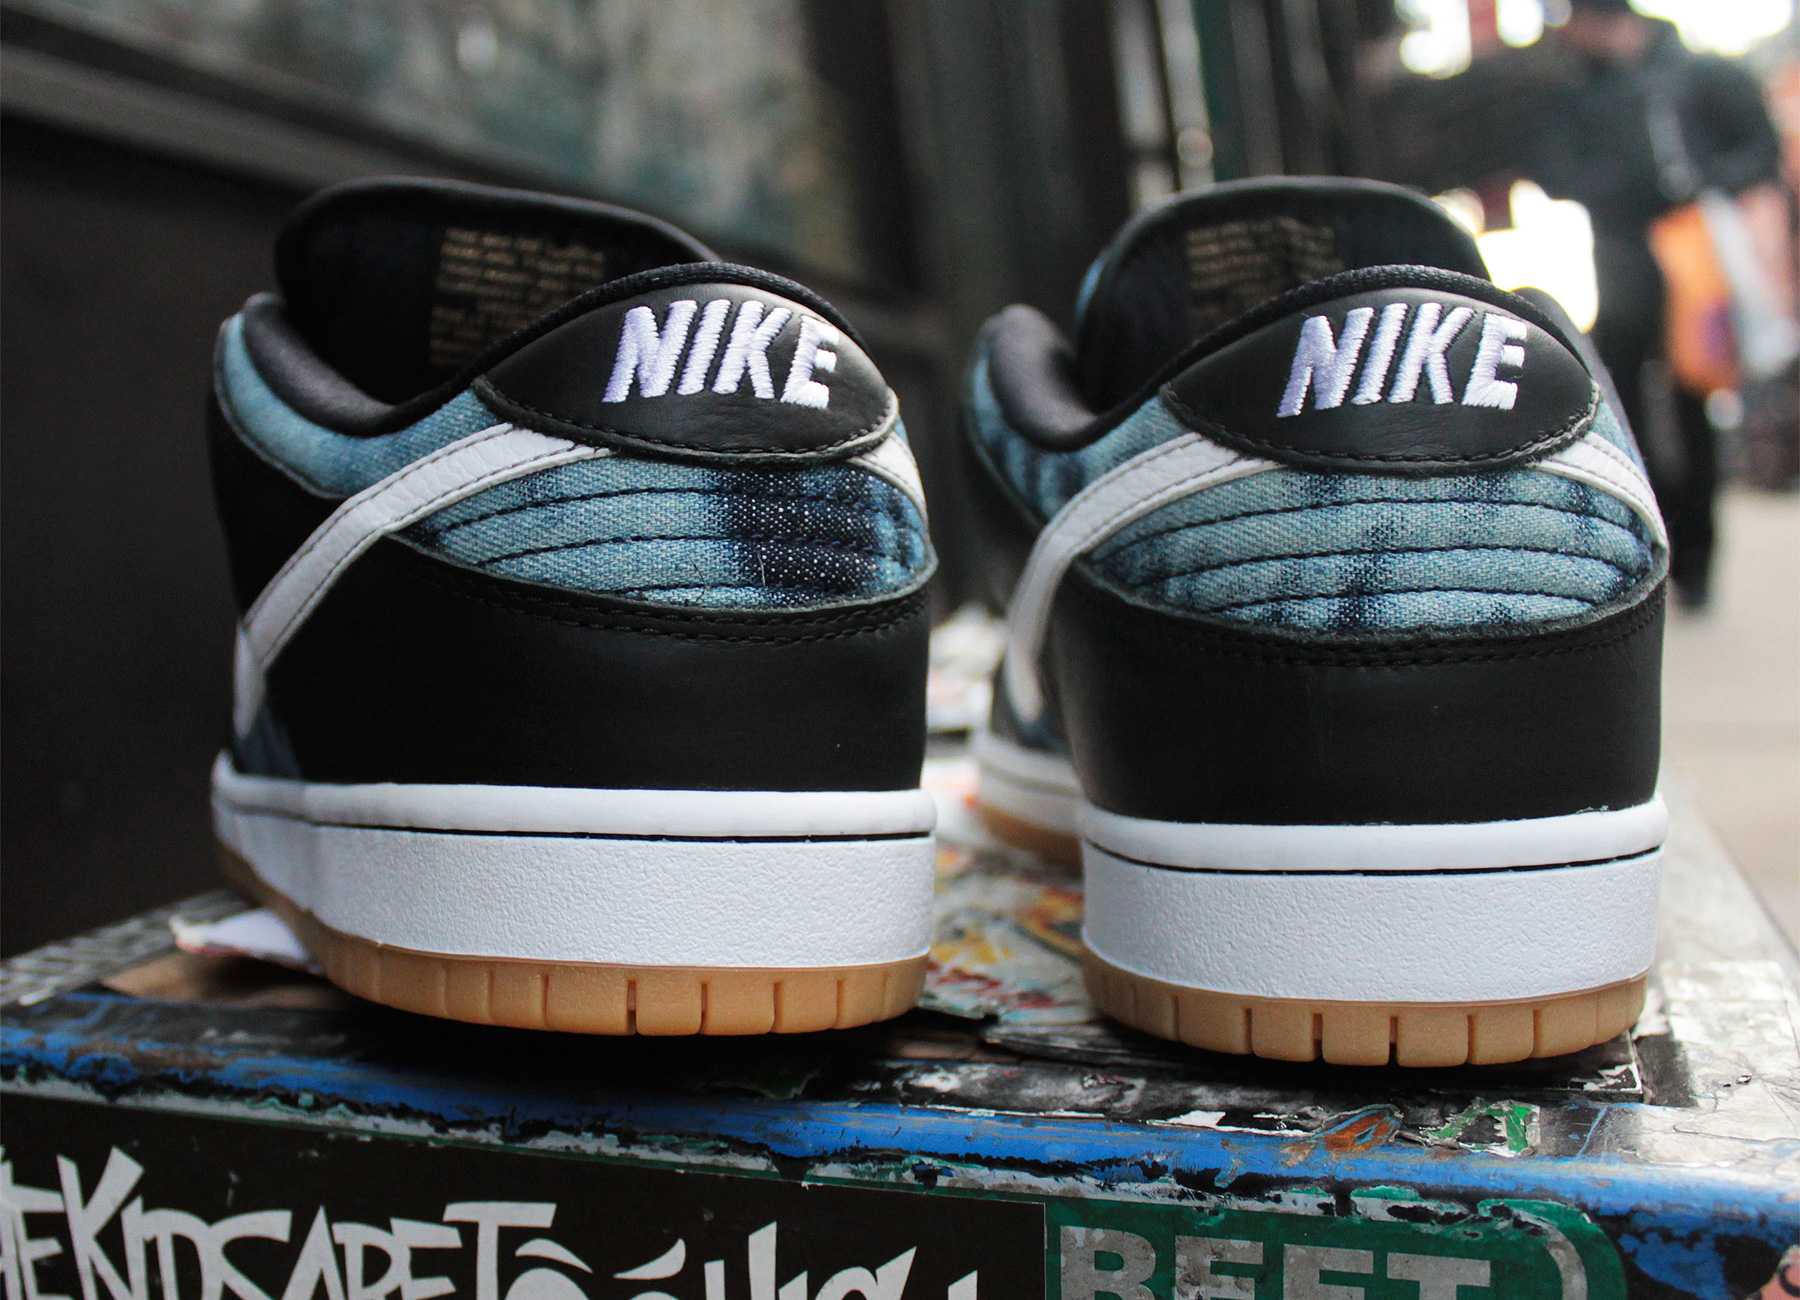 premium selection 31f88 e5a09 Nike SB Dunk Low Fast Times Black Navy White Sz 9 745954-014